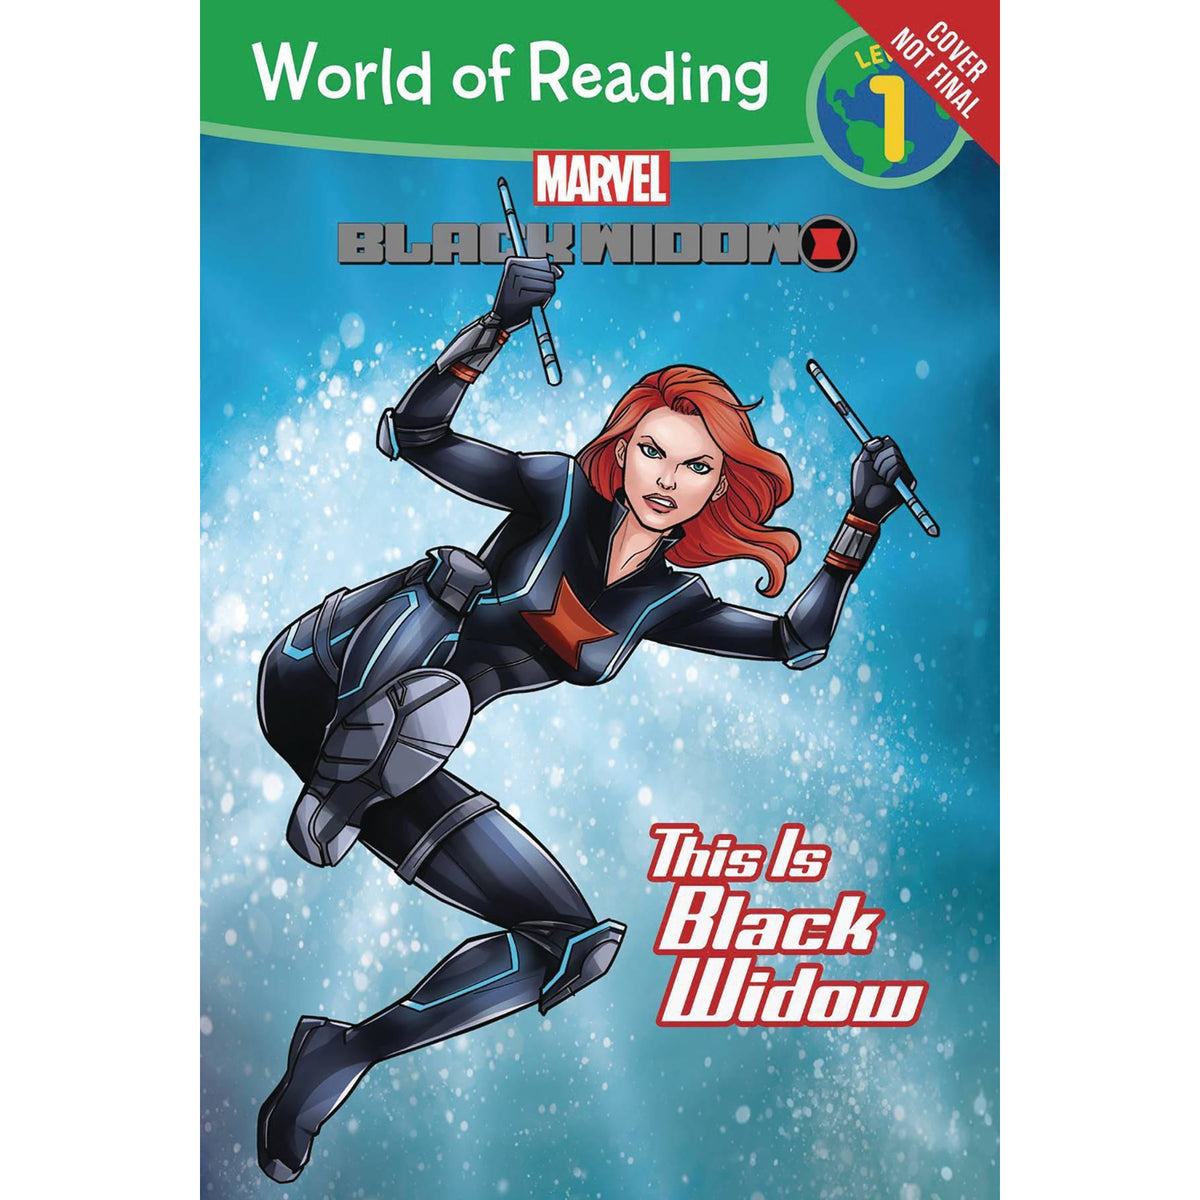 WORLD OF READING: THIS IS BLACK WIDOW